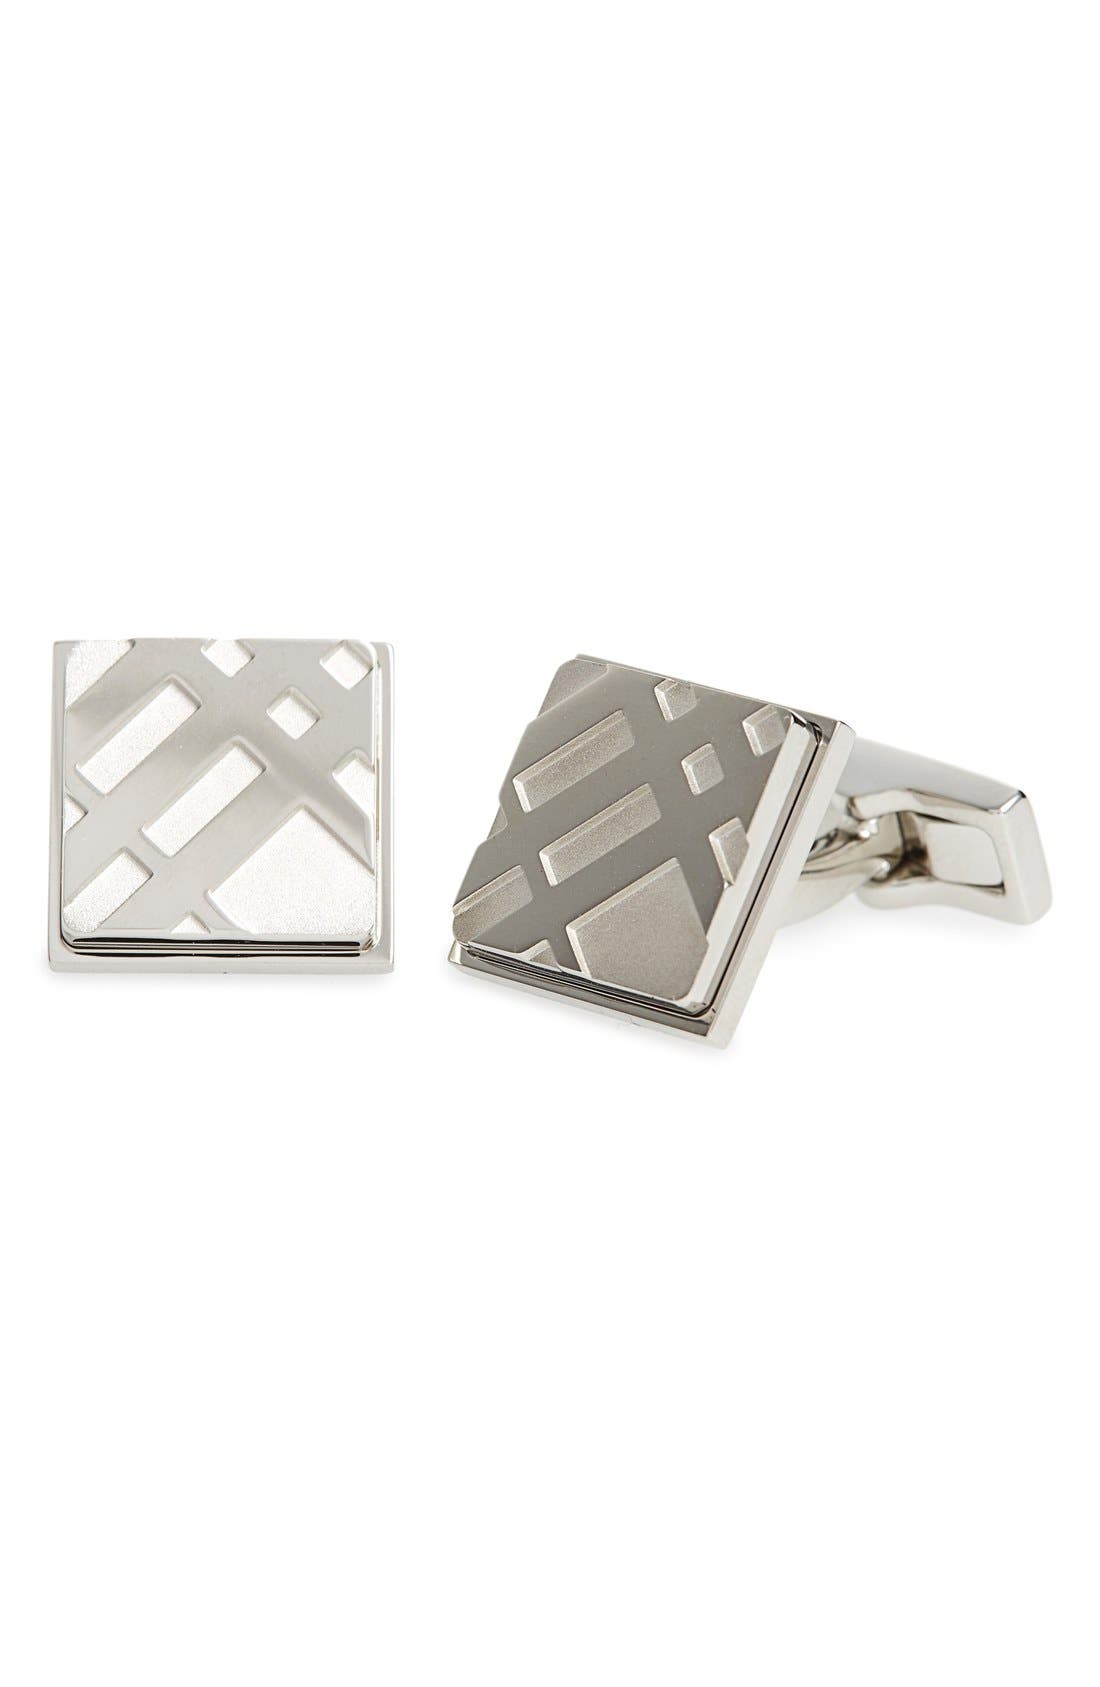 Square Cuff Links,                             Main thumbnail 1, color,                             Silver